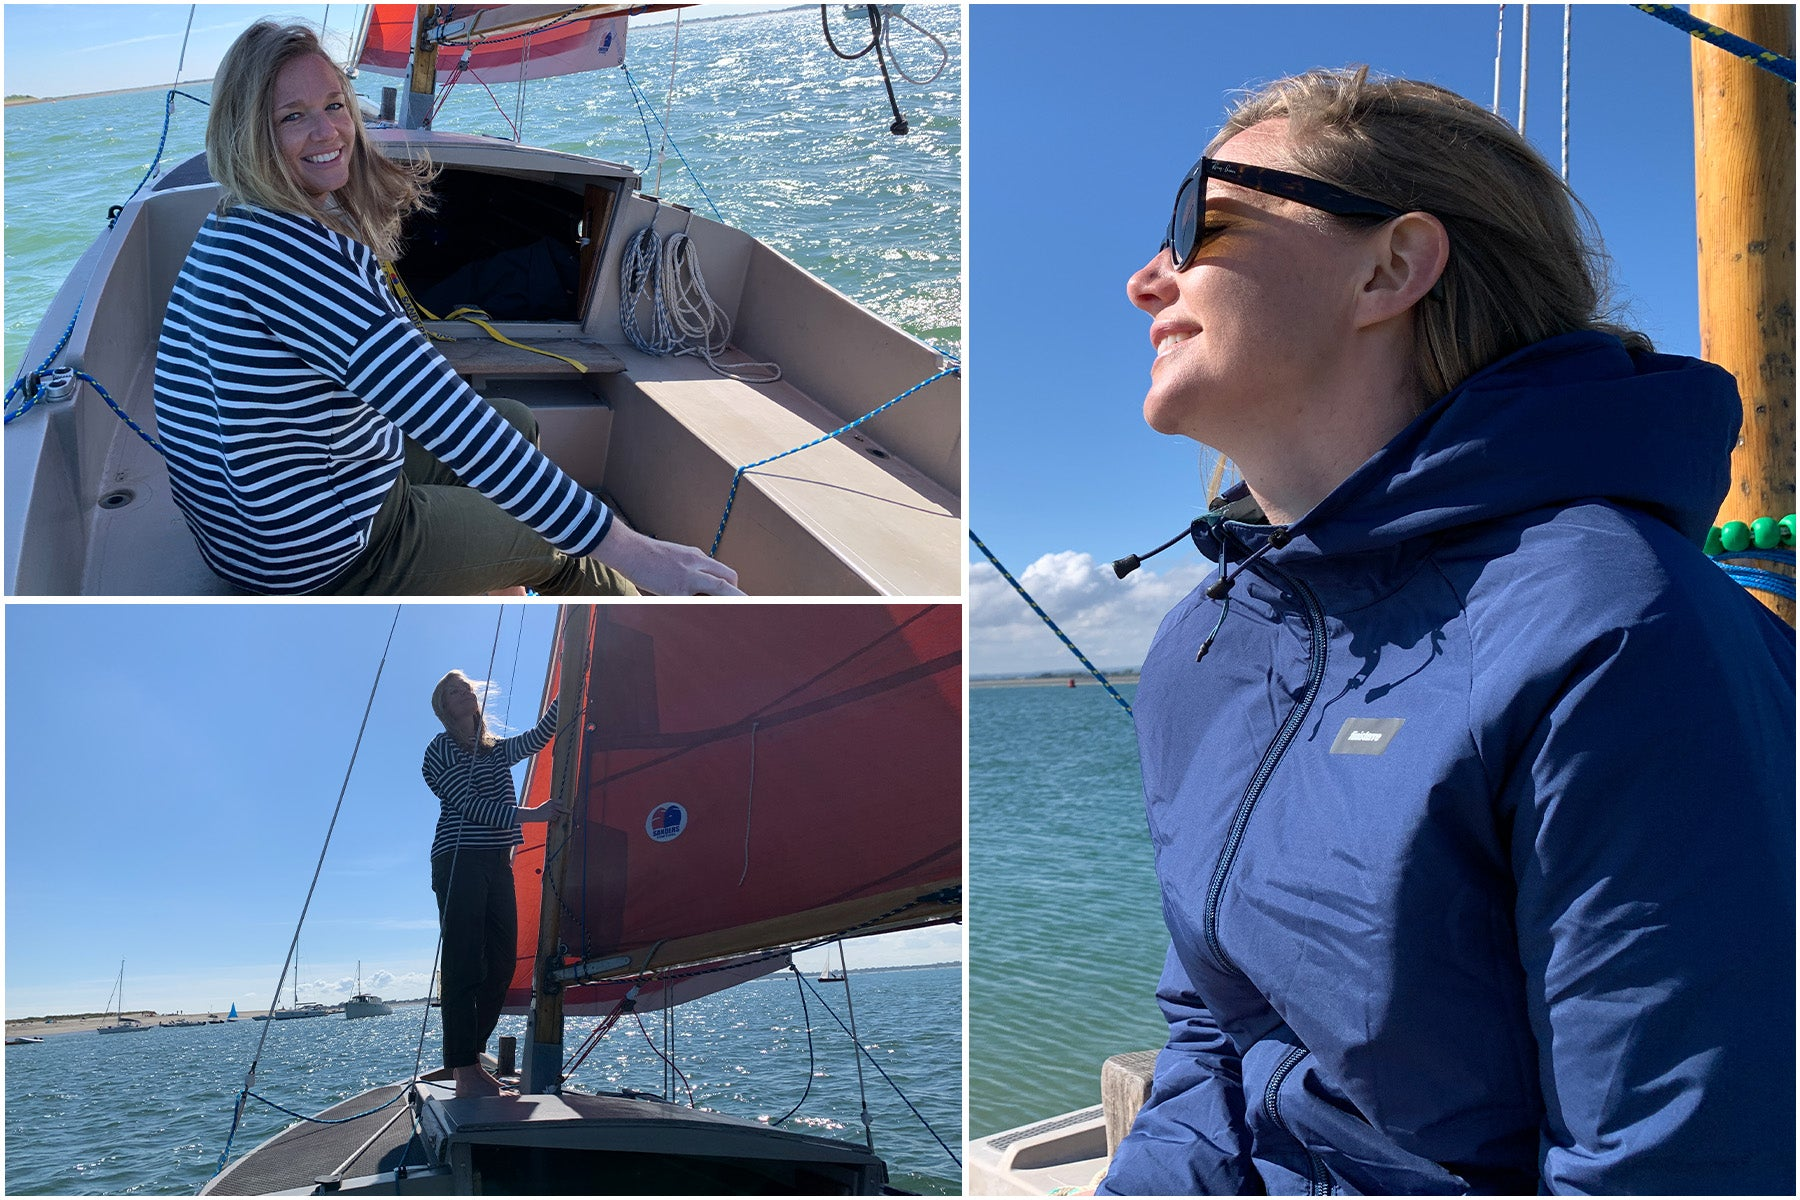 Emily Penn at the helm and in the rigging of her family's Cornish Shrimper